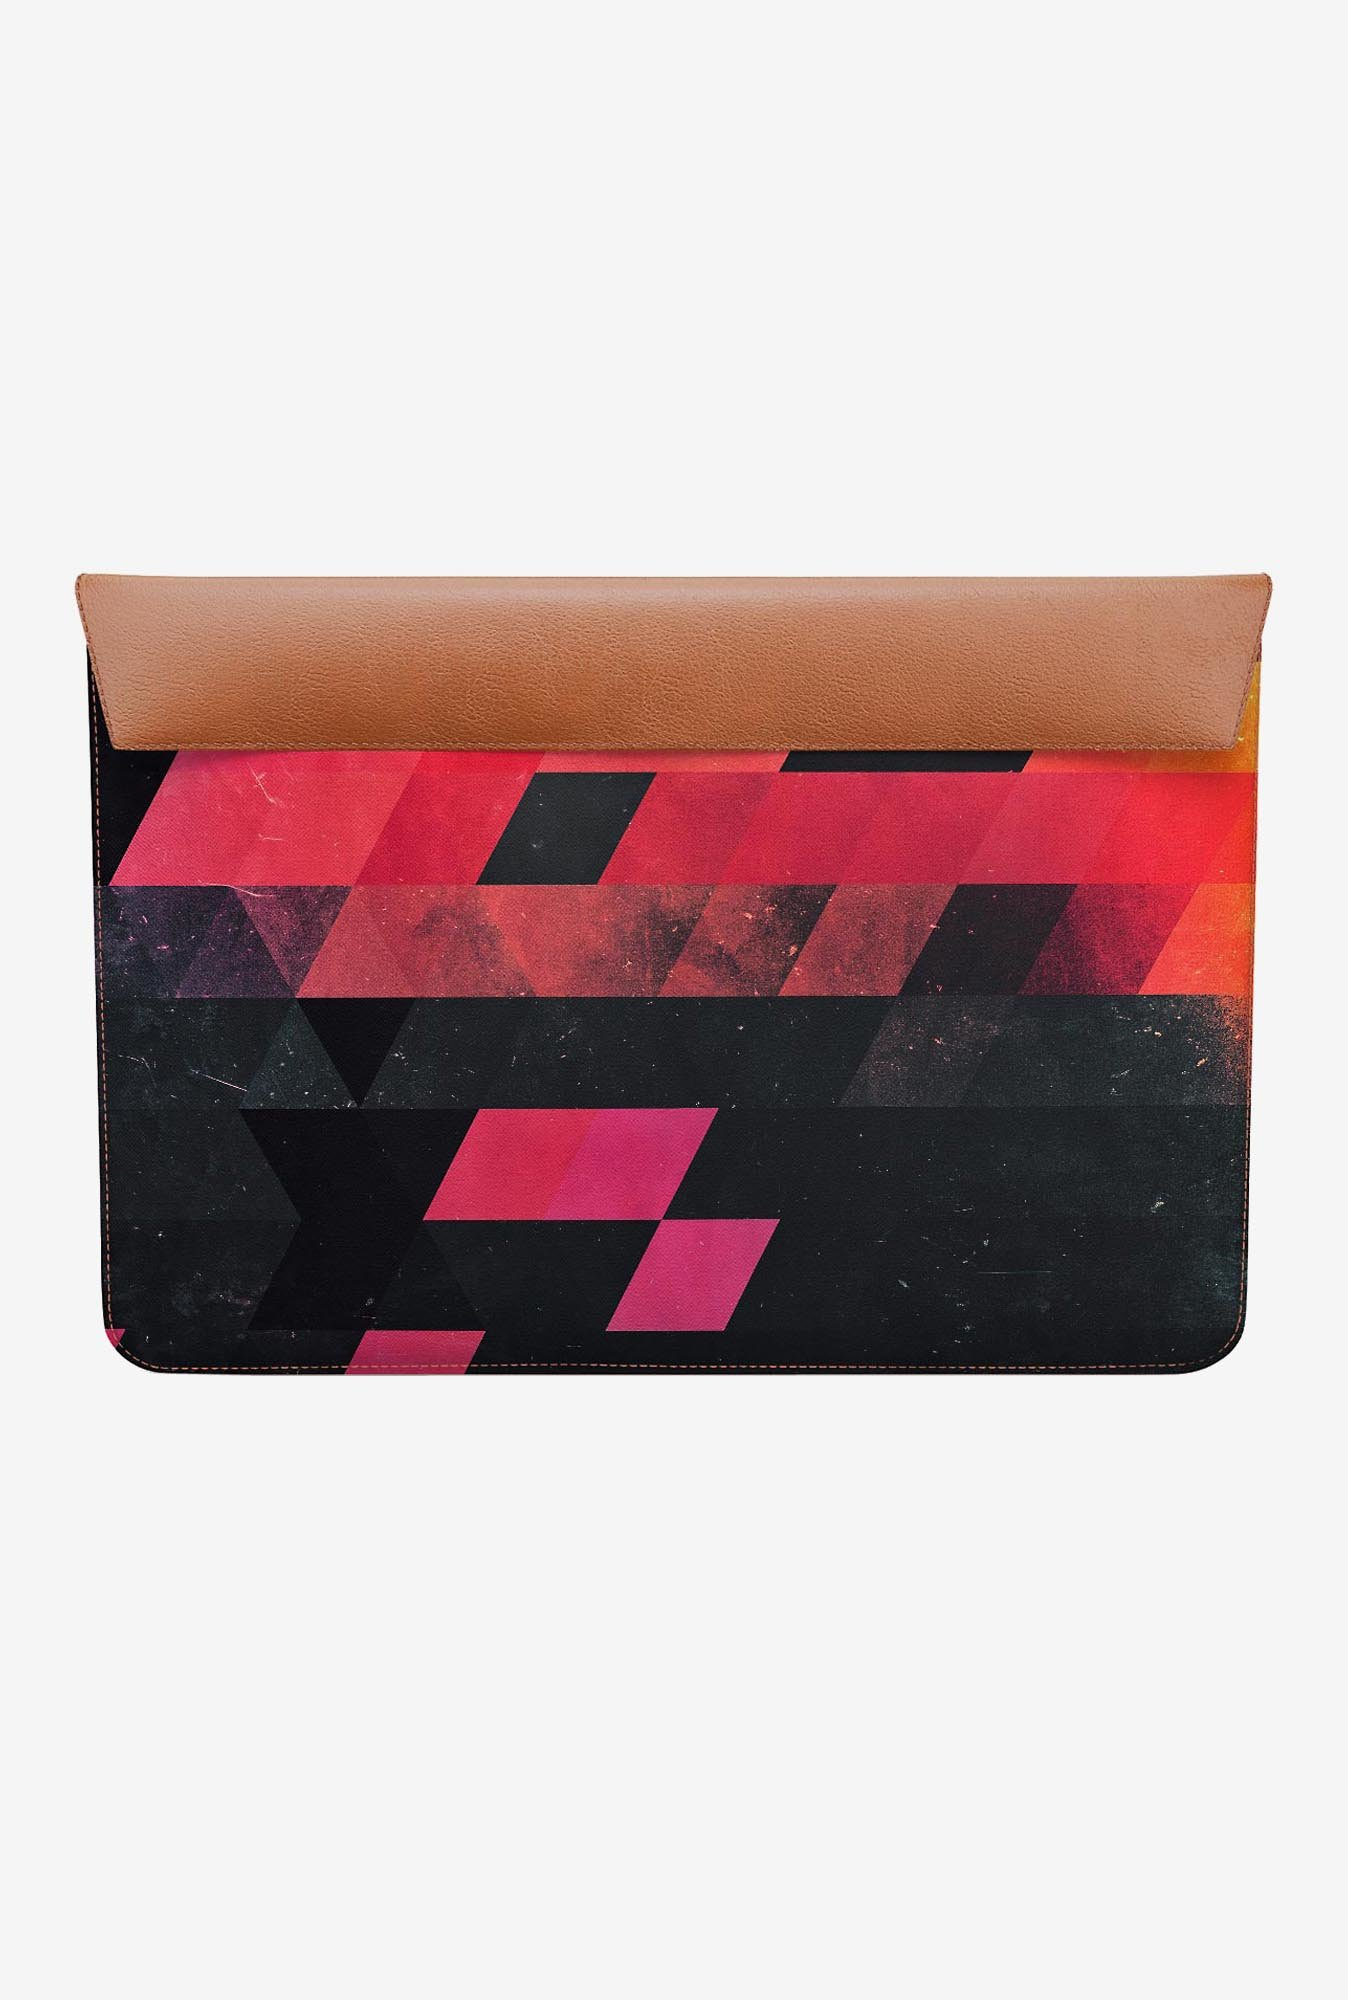 DailyObjects Ylmyst Tyme MacBook Air 11 Envelope Sleeve